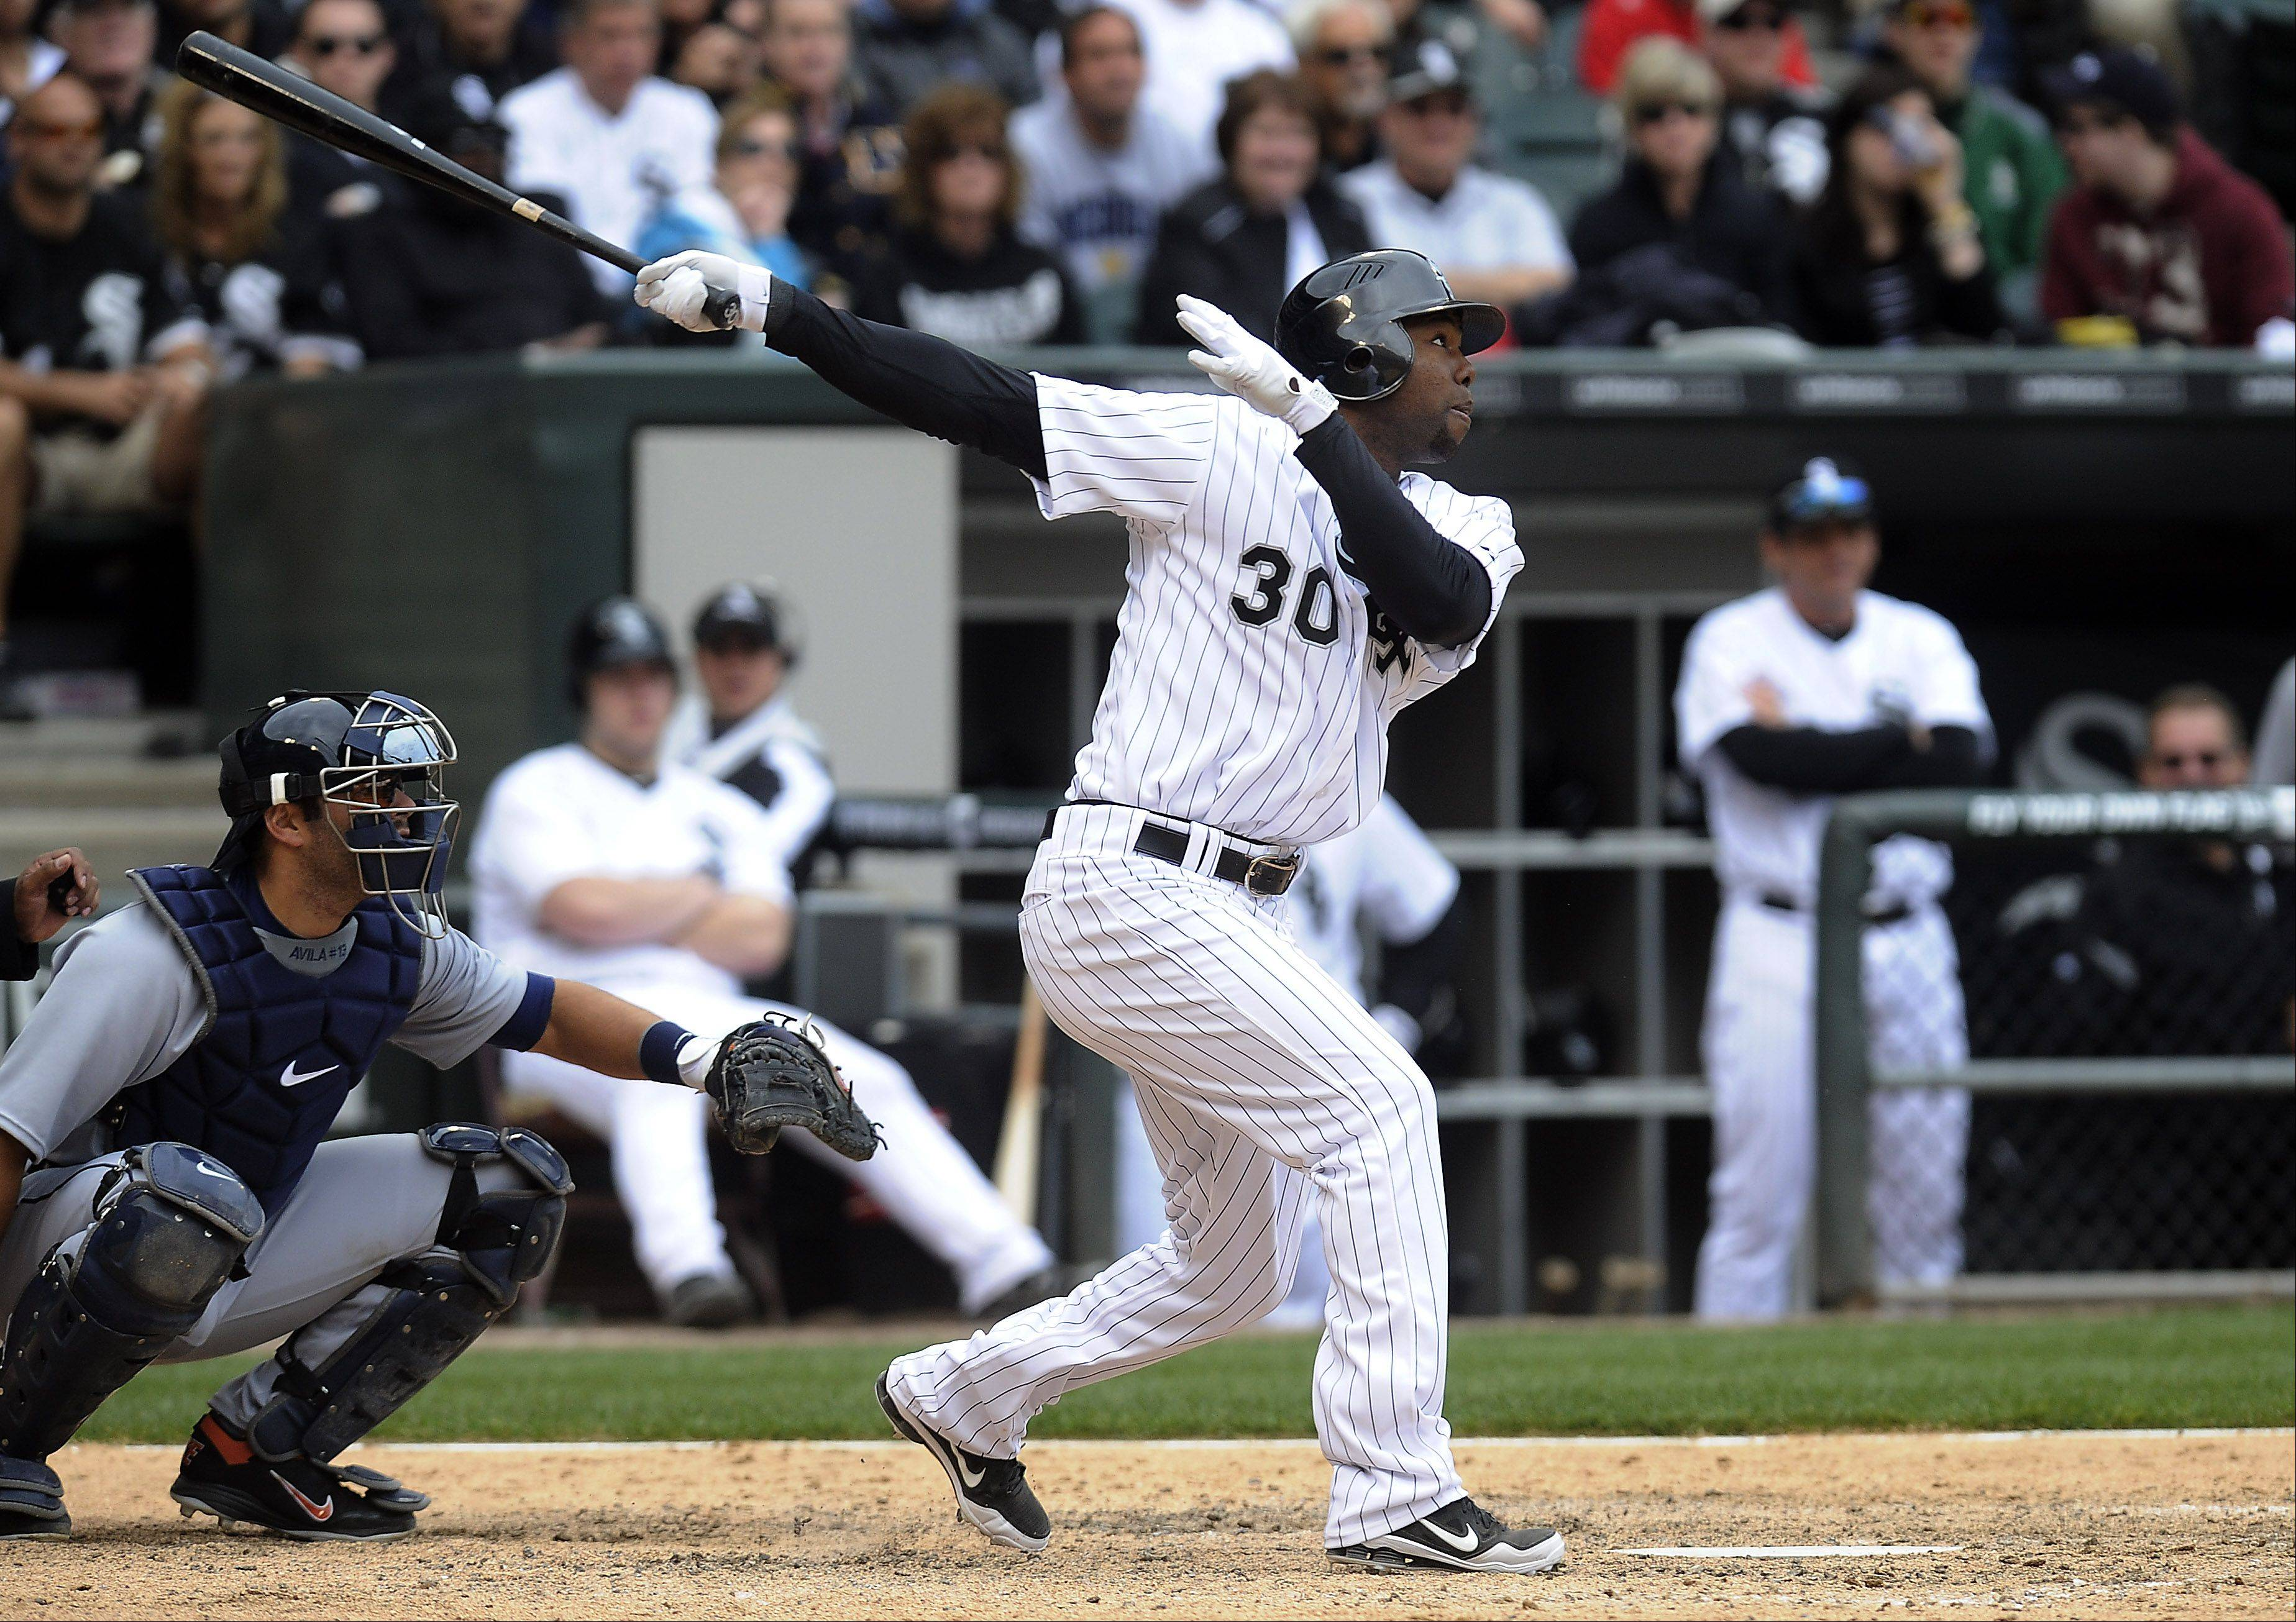 White Sox Alejandro De Aza hits a triple in the eighth inning.